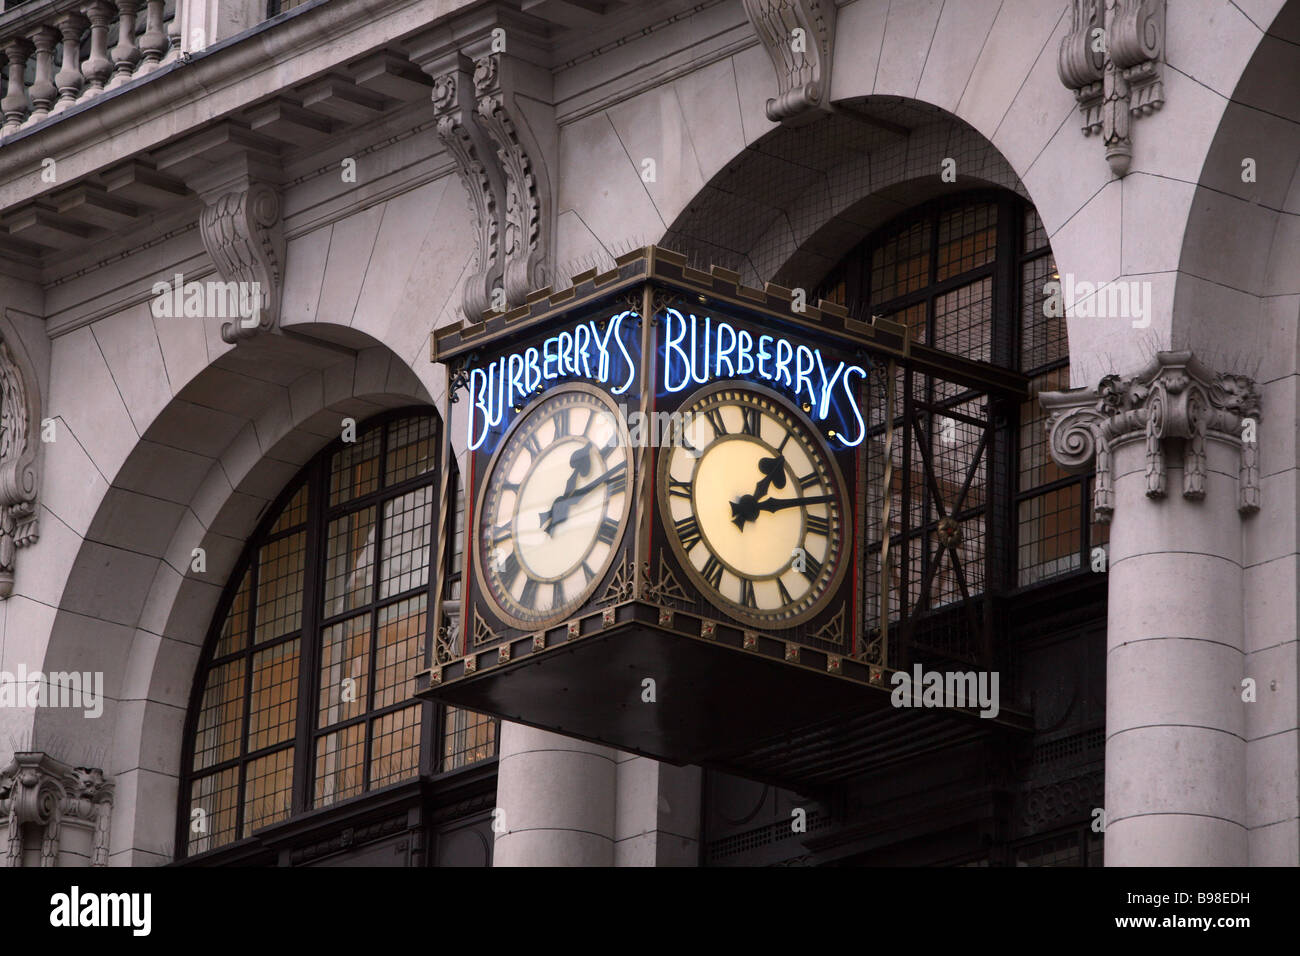 The Clock On The Wall Outside The Burberry Headquarters In Haymarket